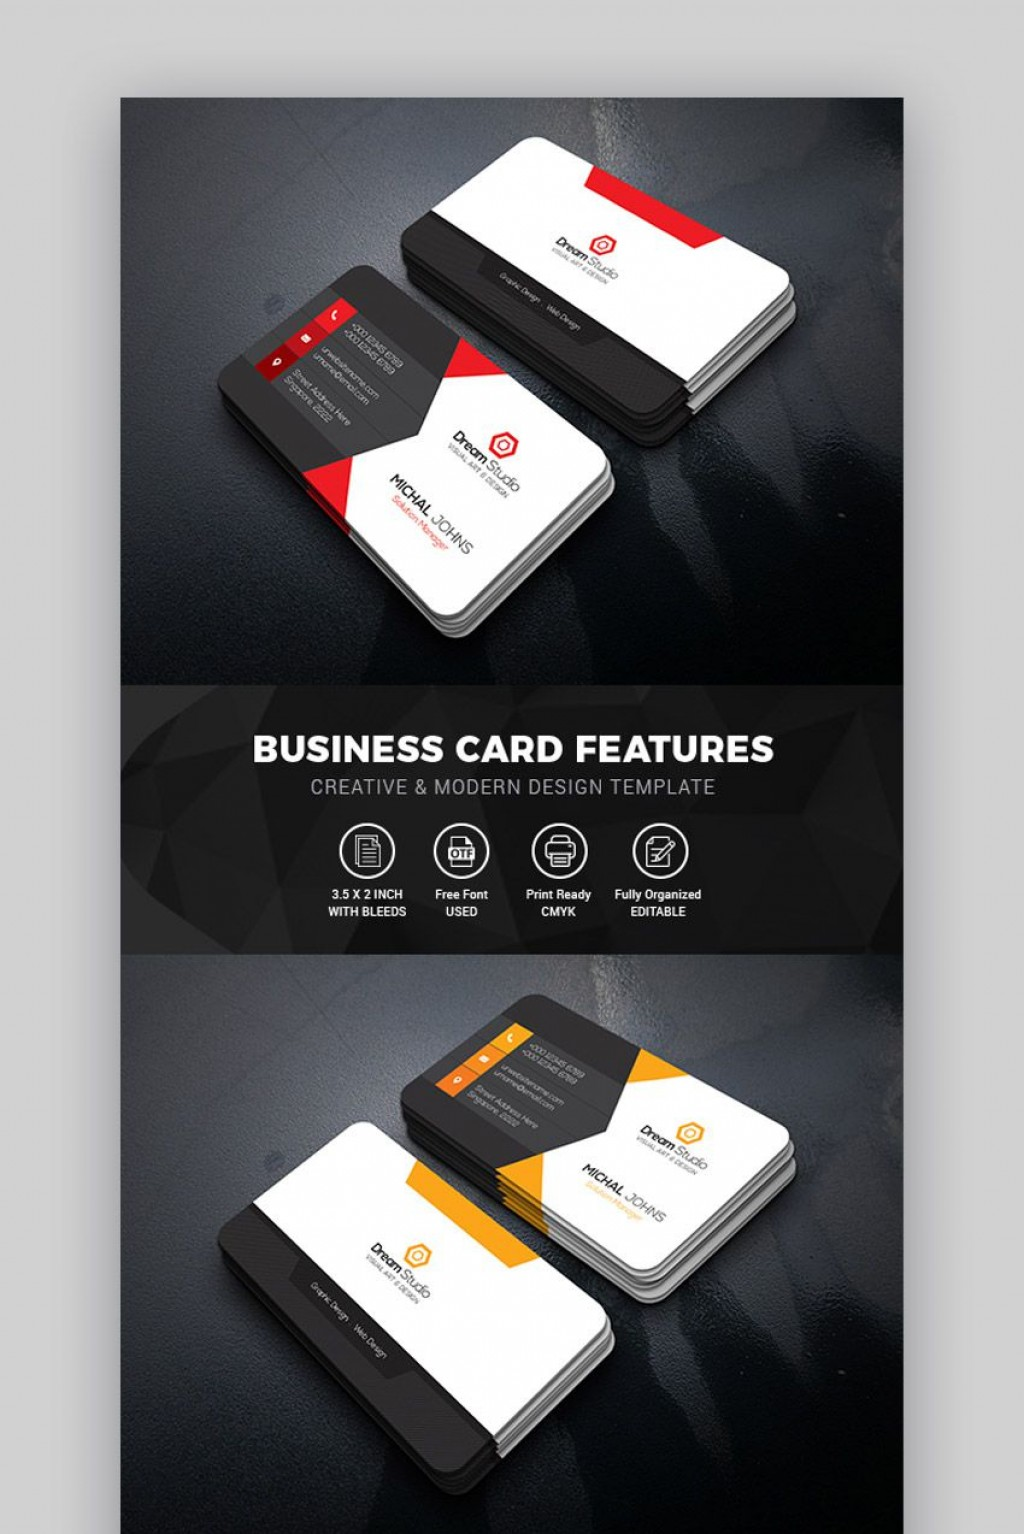 008 Impressive Blank Busines Card Template Psd Free Concept  Photoshop DownloadLarge